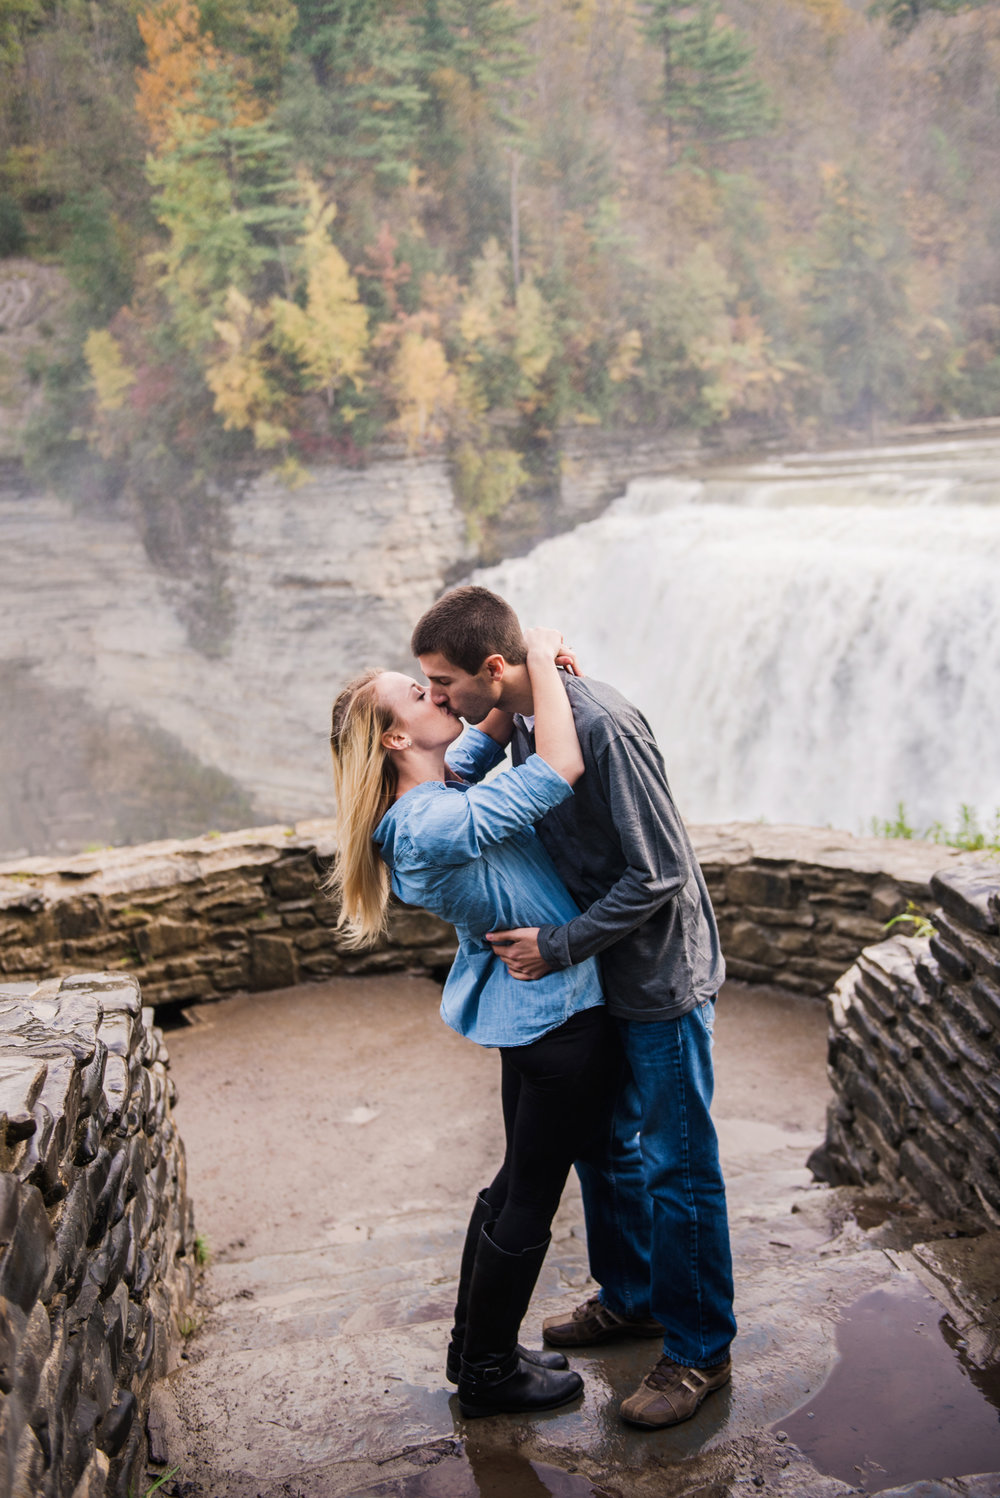 Letchworth_State_Park_Rochester_Engagement_Session_JILL_STUDIO_Rochester_NY_Photographer_DSC_6600.jpg